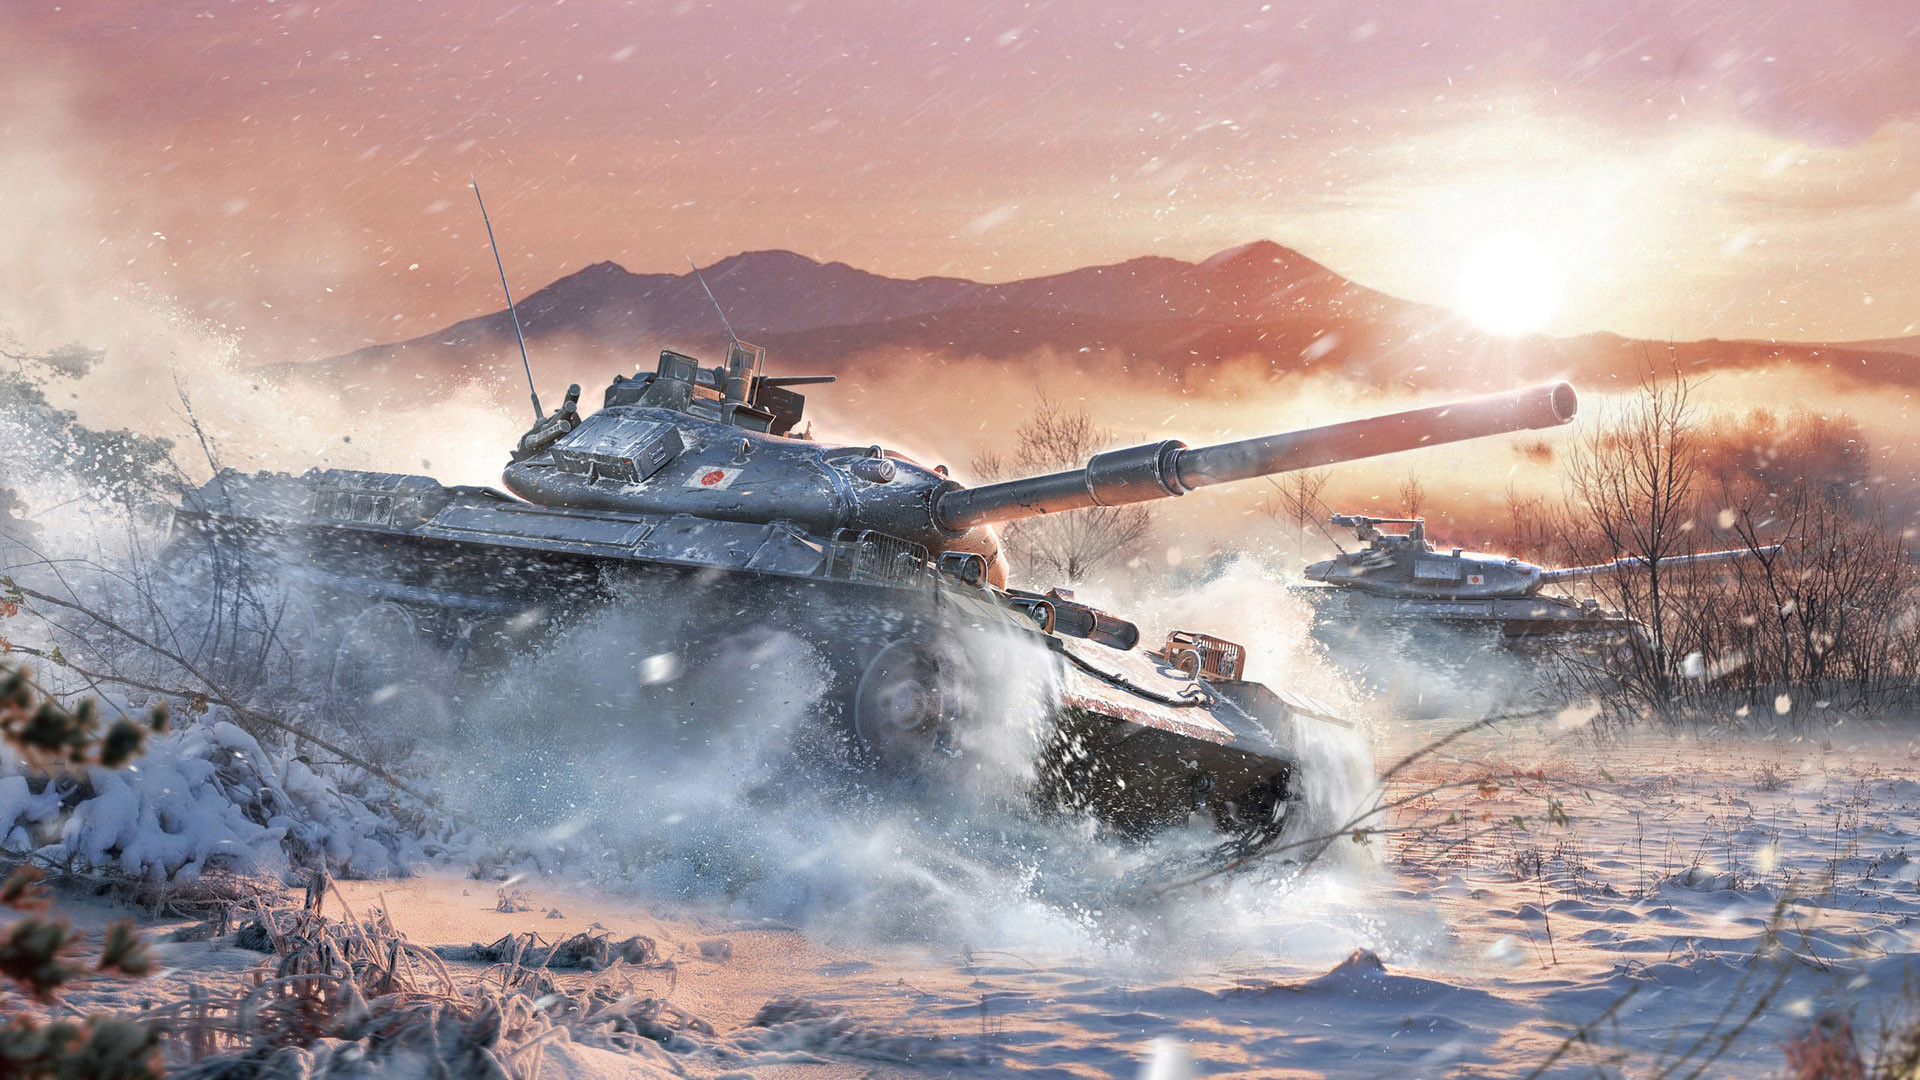 Res: 1920x1080, Wallpaper world of tanks japan tank art winter snowfall